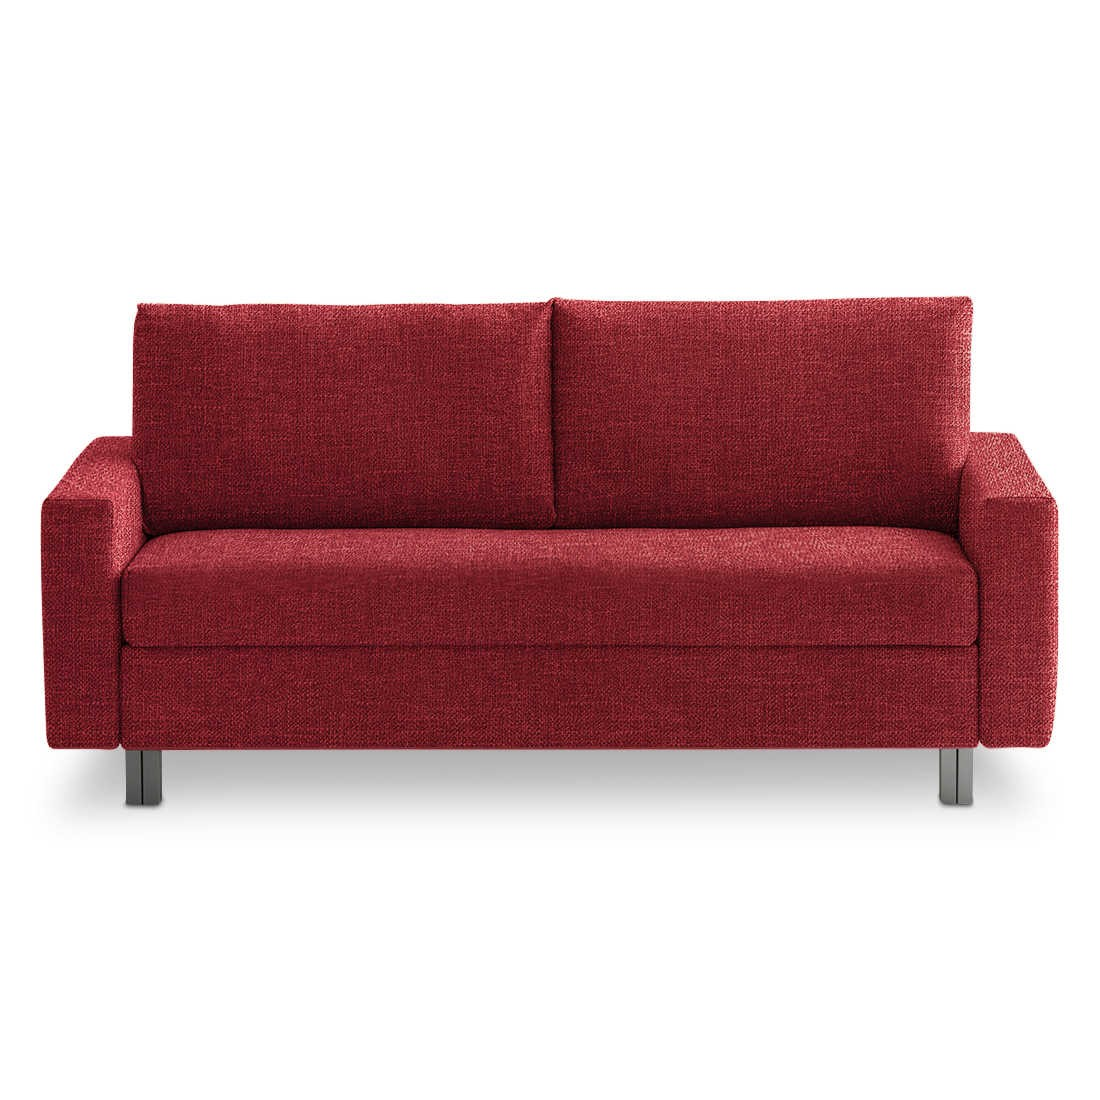 franz fertig schlafsofa maxita rot stoff online kaufen bei woonio. Black Bedroom Furniture Sets. Home Design Ideas